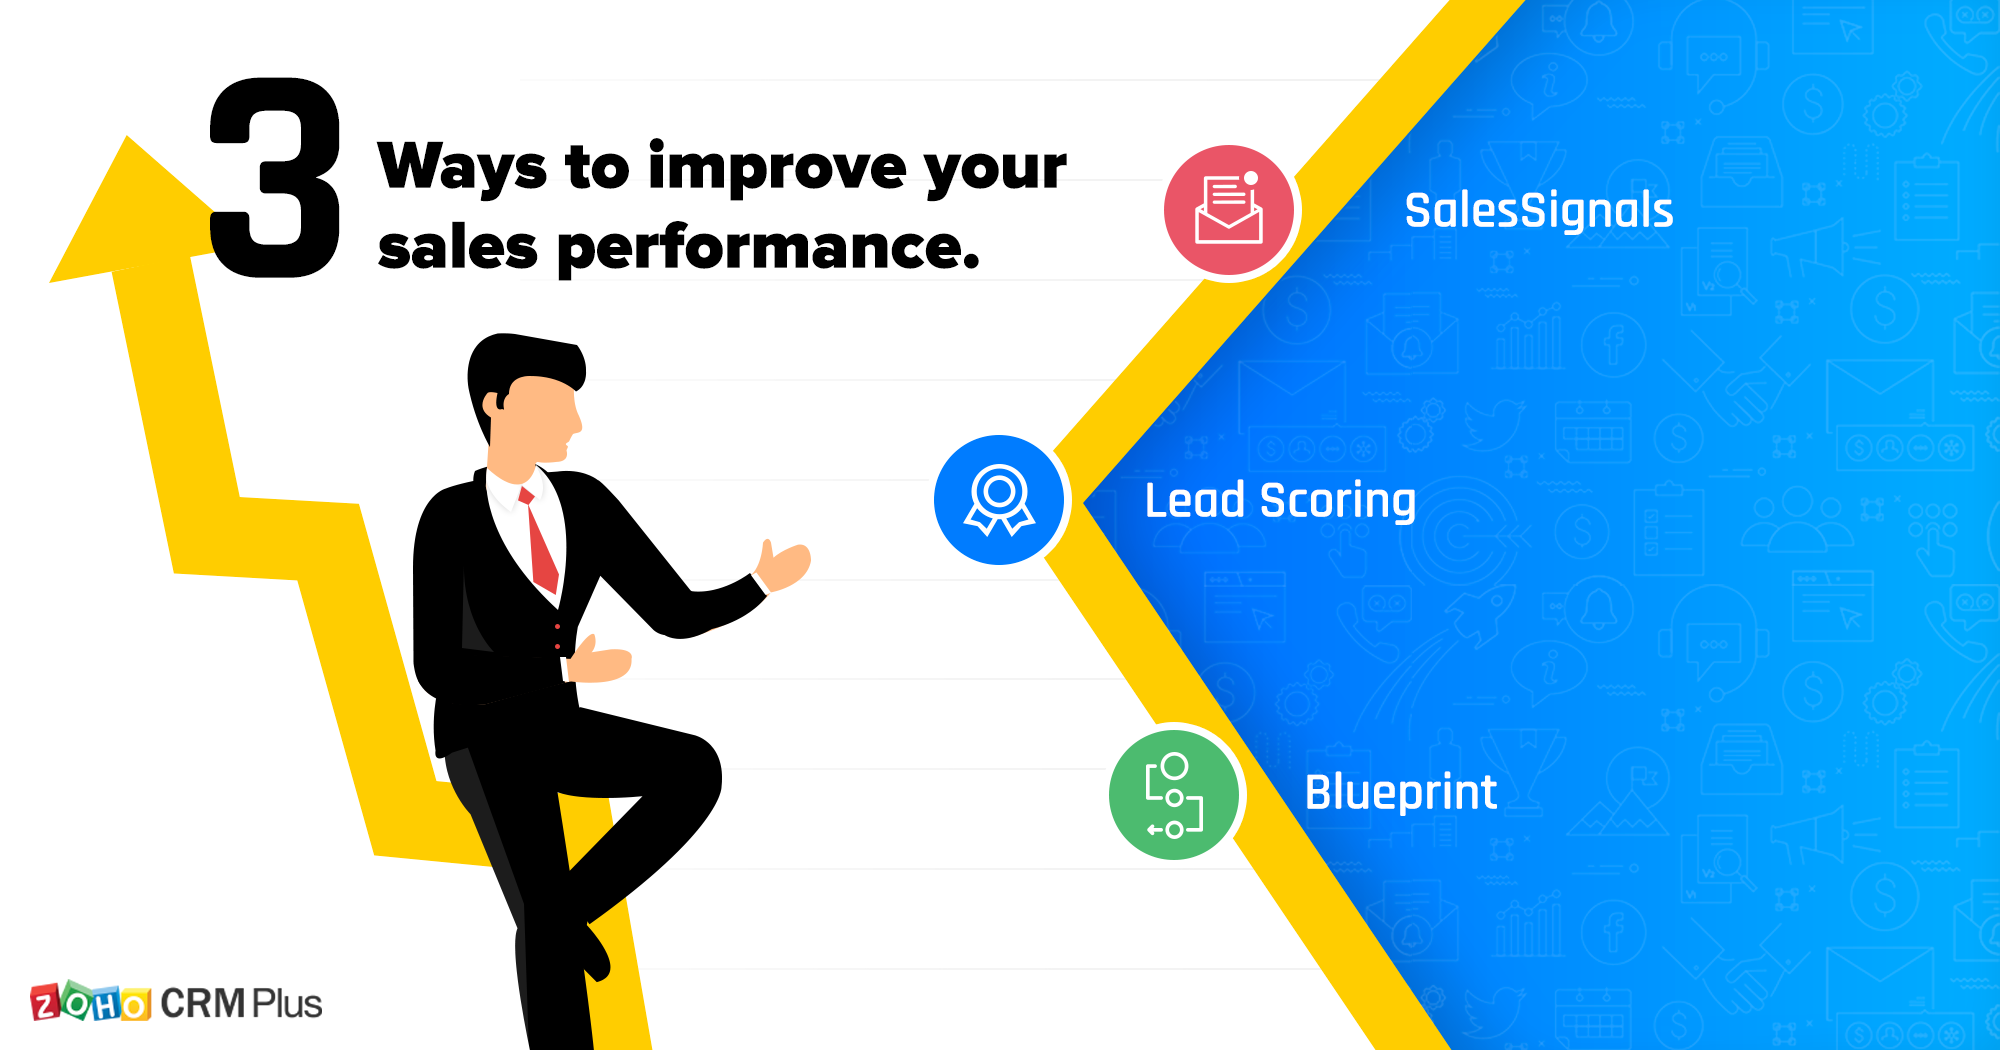 3 ways to improve your sales performance zoho blog are passed on to your sales team to convert them into customers in this stage its important to focus on prompt communication contextual information malvernweather Image collections